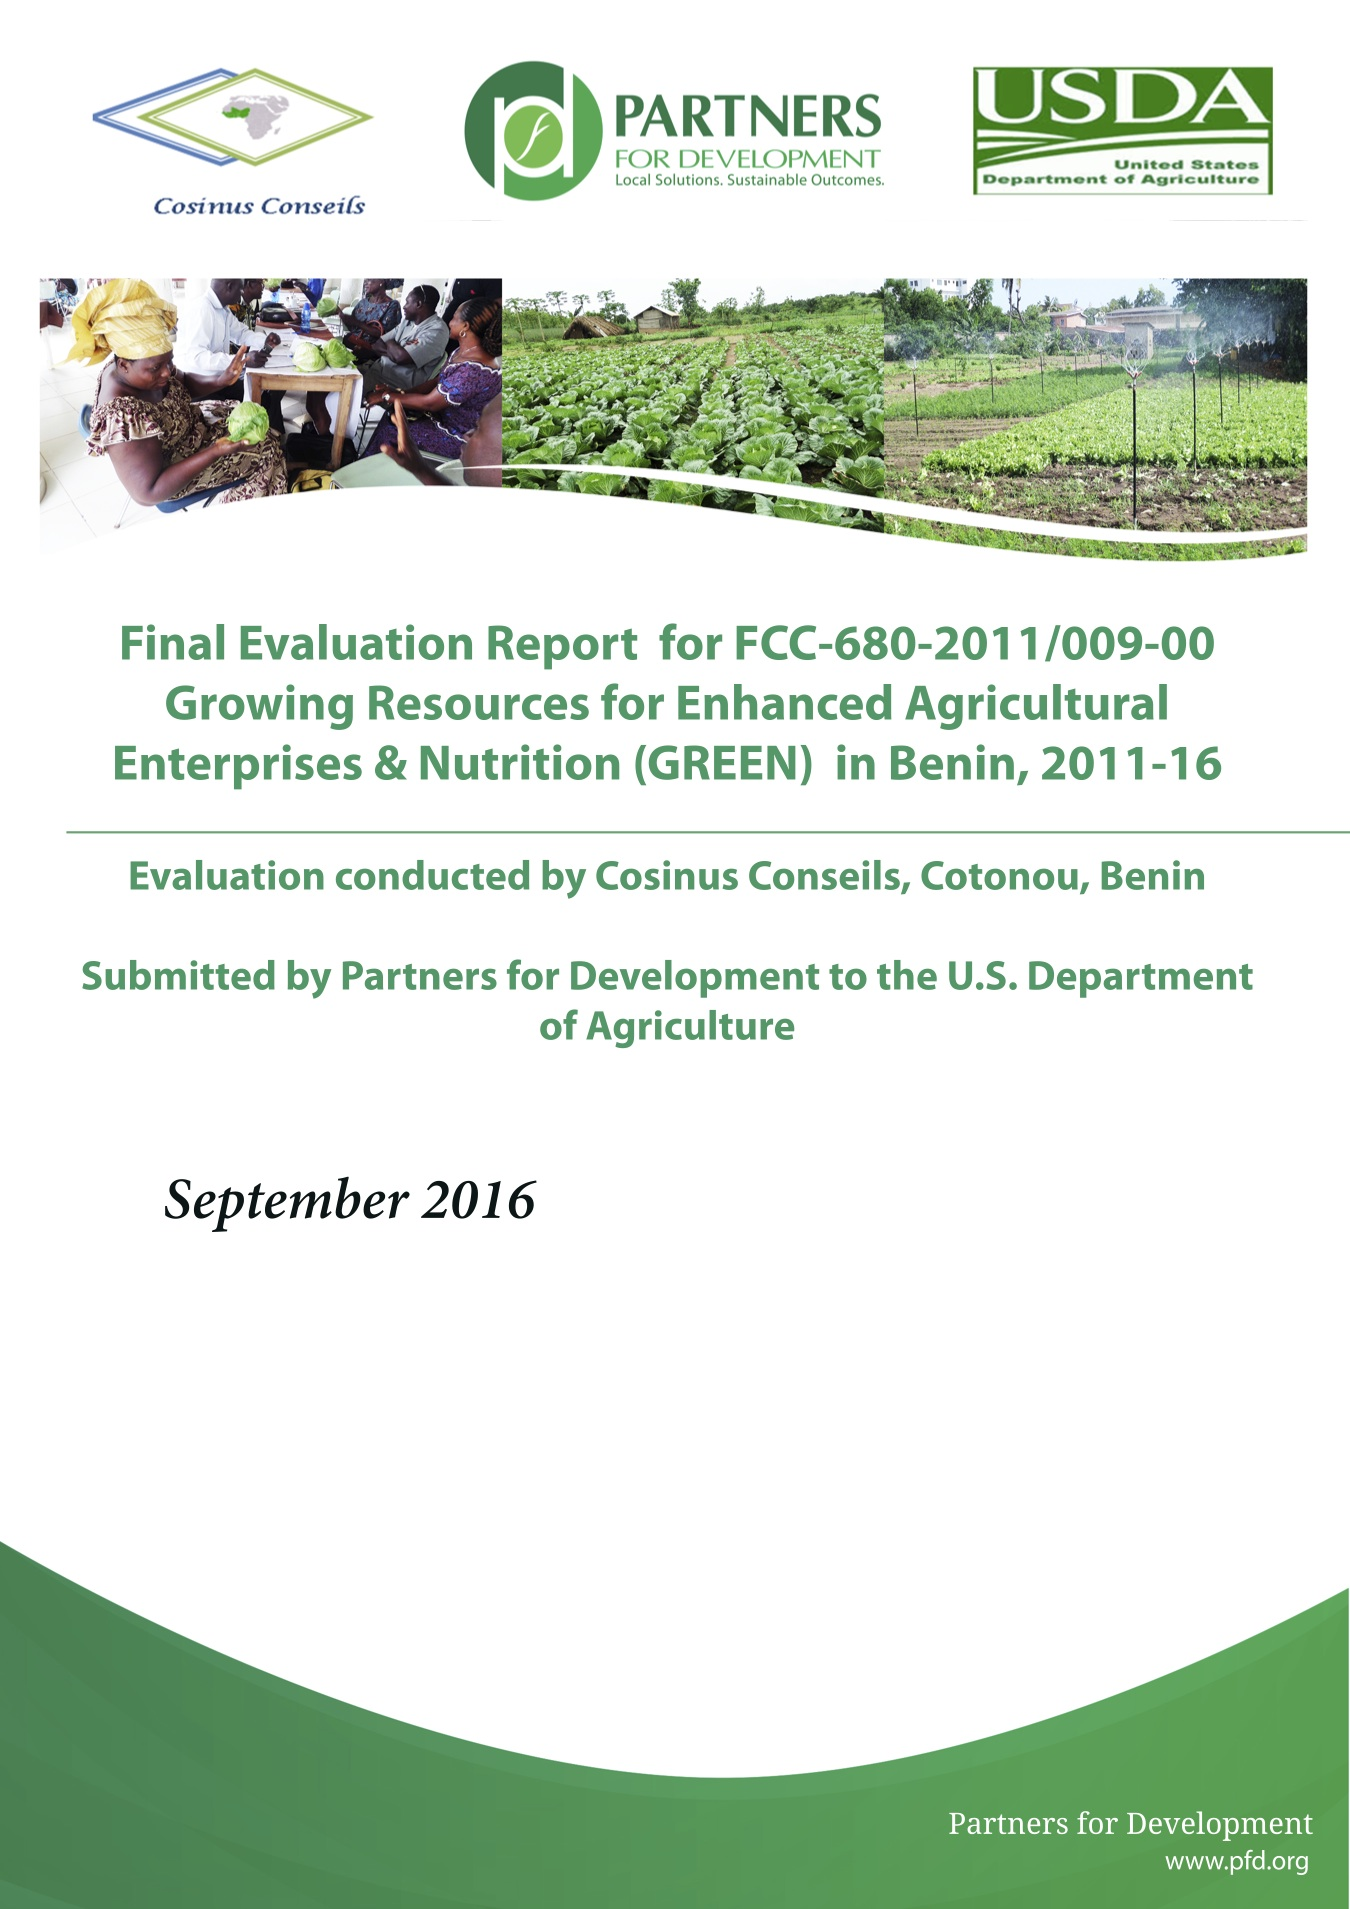 green final evaluation cover 2016